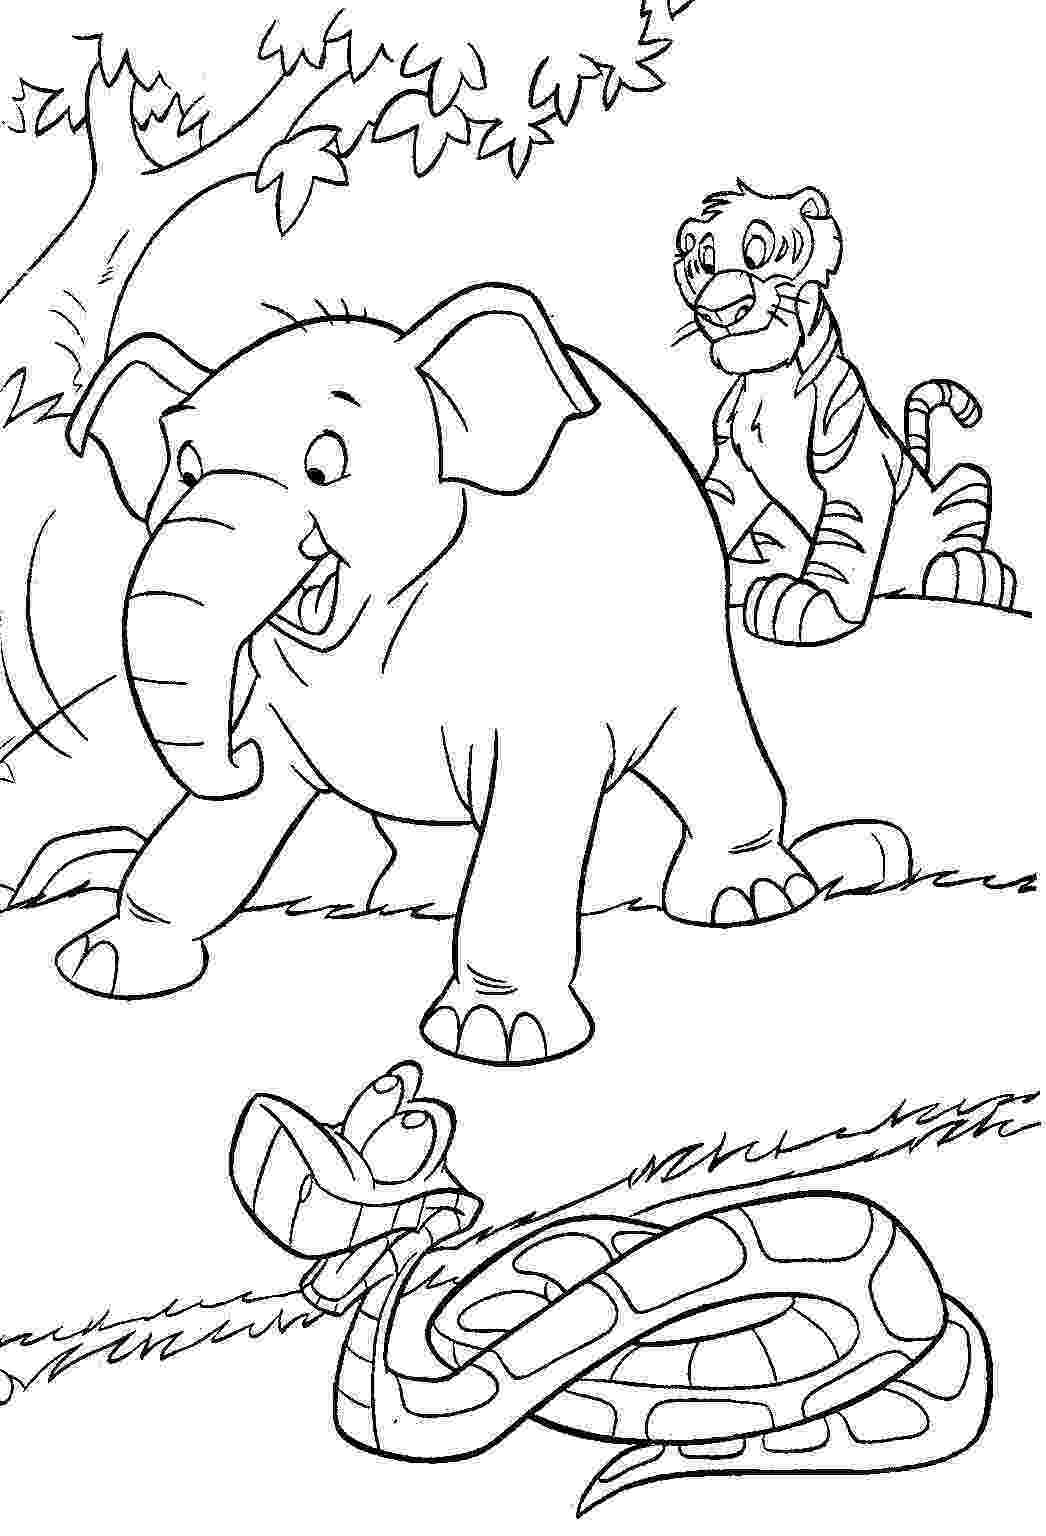 jungle animals coloring pages safari animals coloring pages getcoloringpagescom coloring jungle animals pages